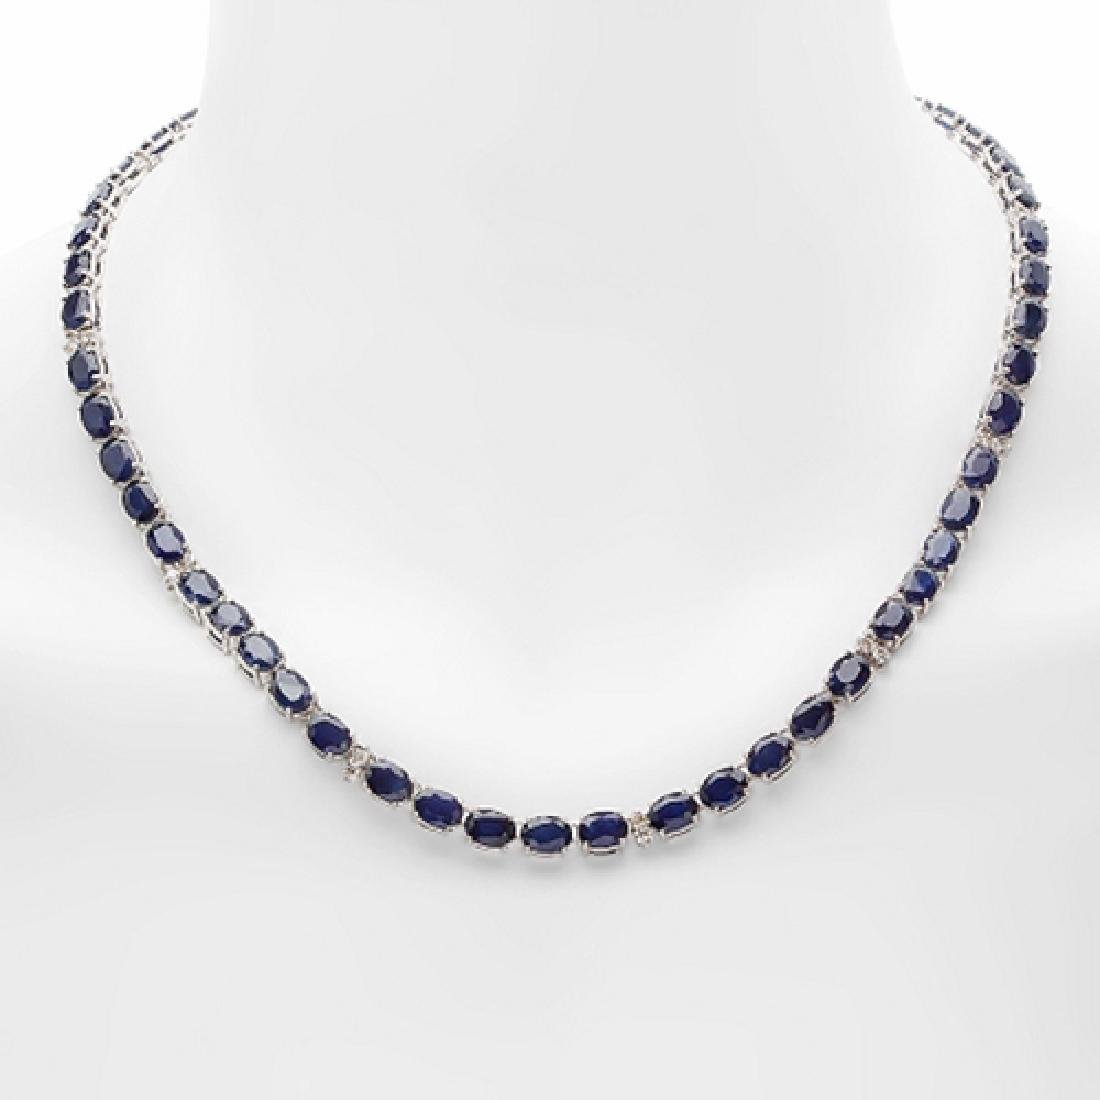 55.85 Carat Natural Sapphire 18K Solid White Gold